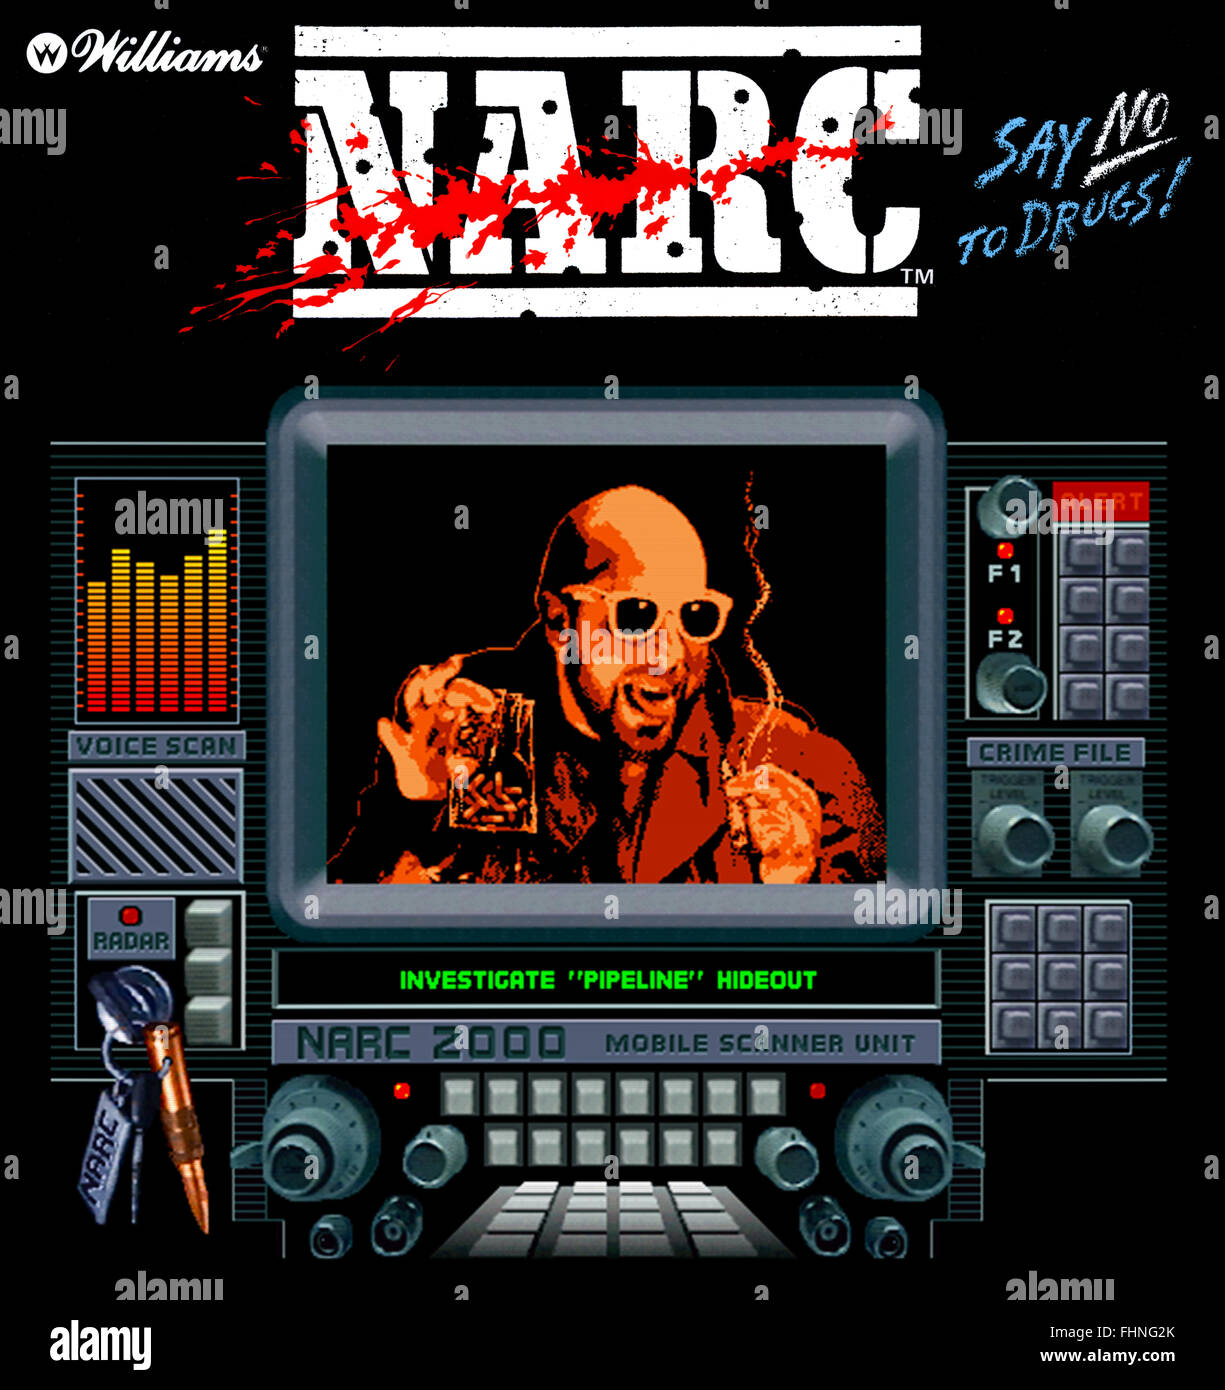 'Narc' arcade game produced by Williams in 1988 featuring the anti-drug slogan 'Say No to Drugs'. - Stock Image